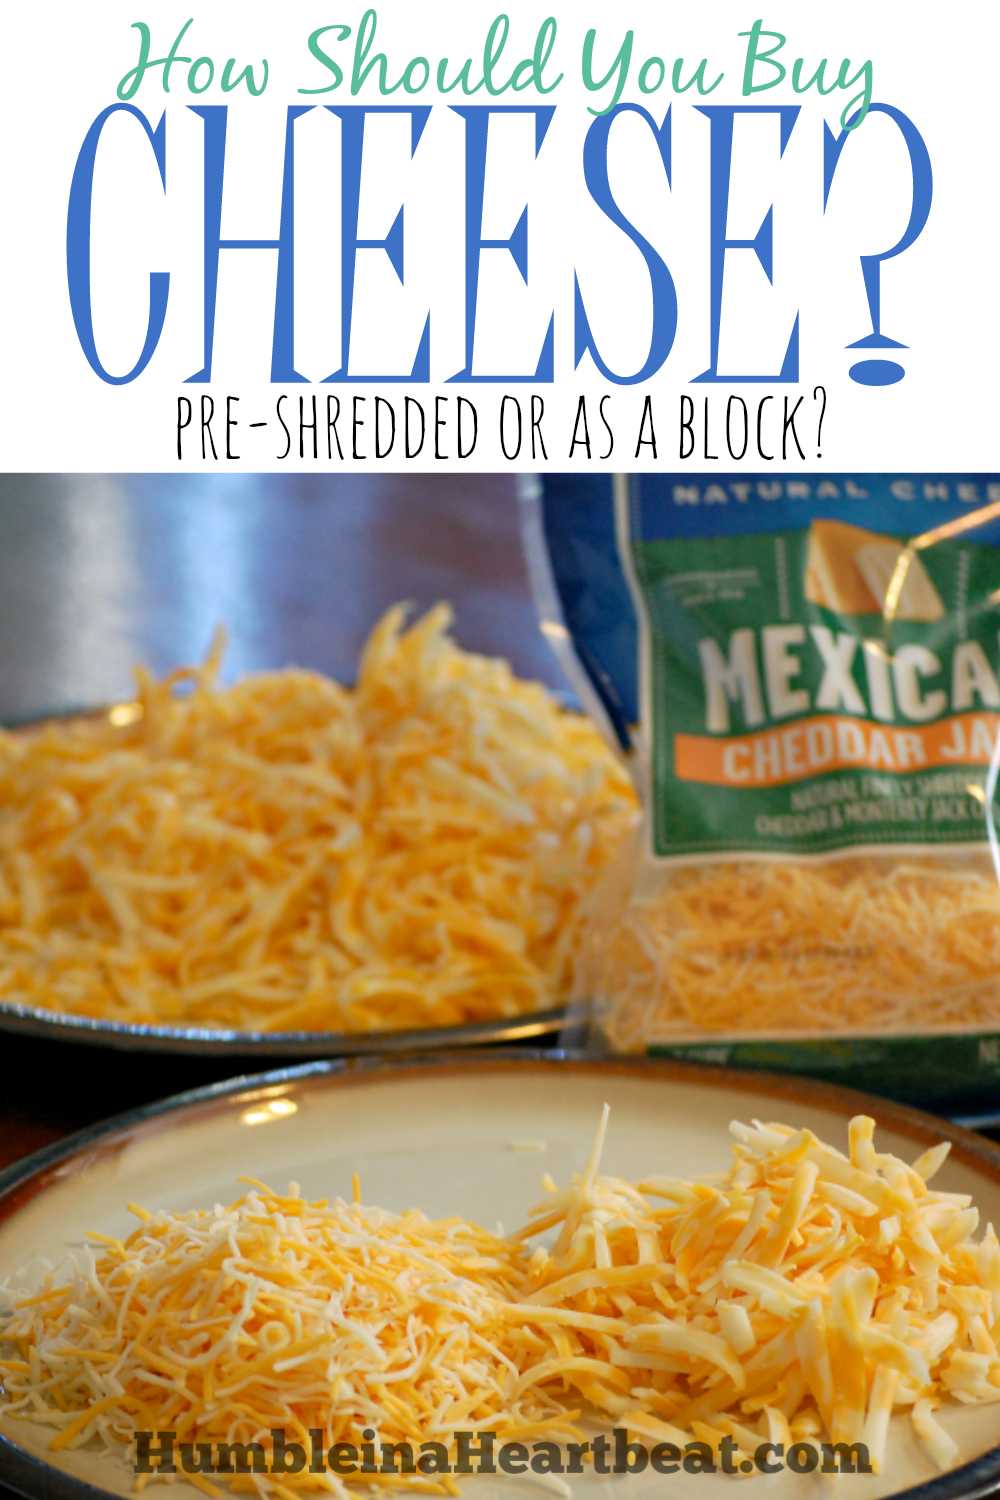 Is It Cheaper to Buy Shredded Cheese or a Block of Cheese?